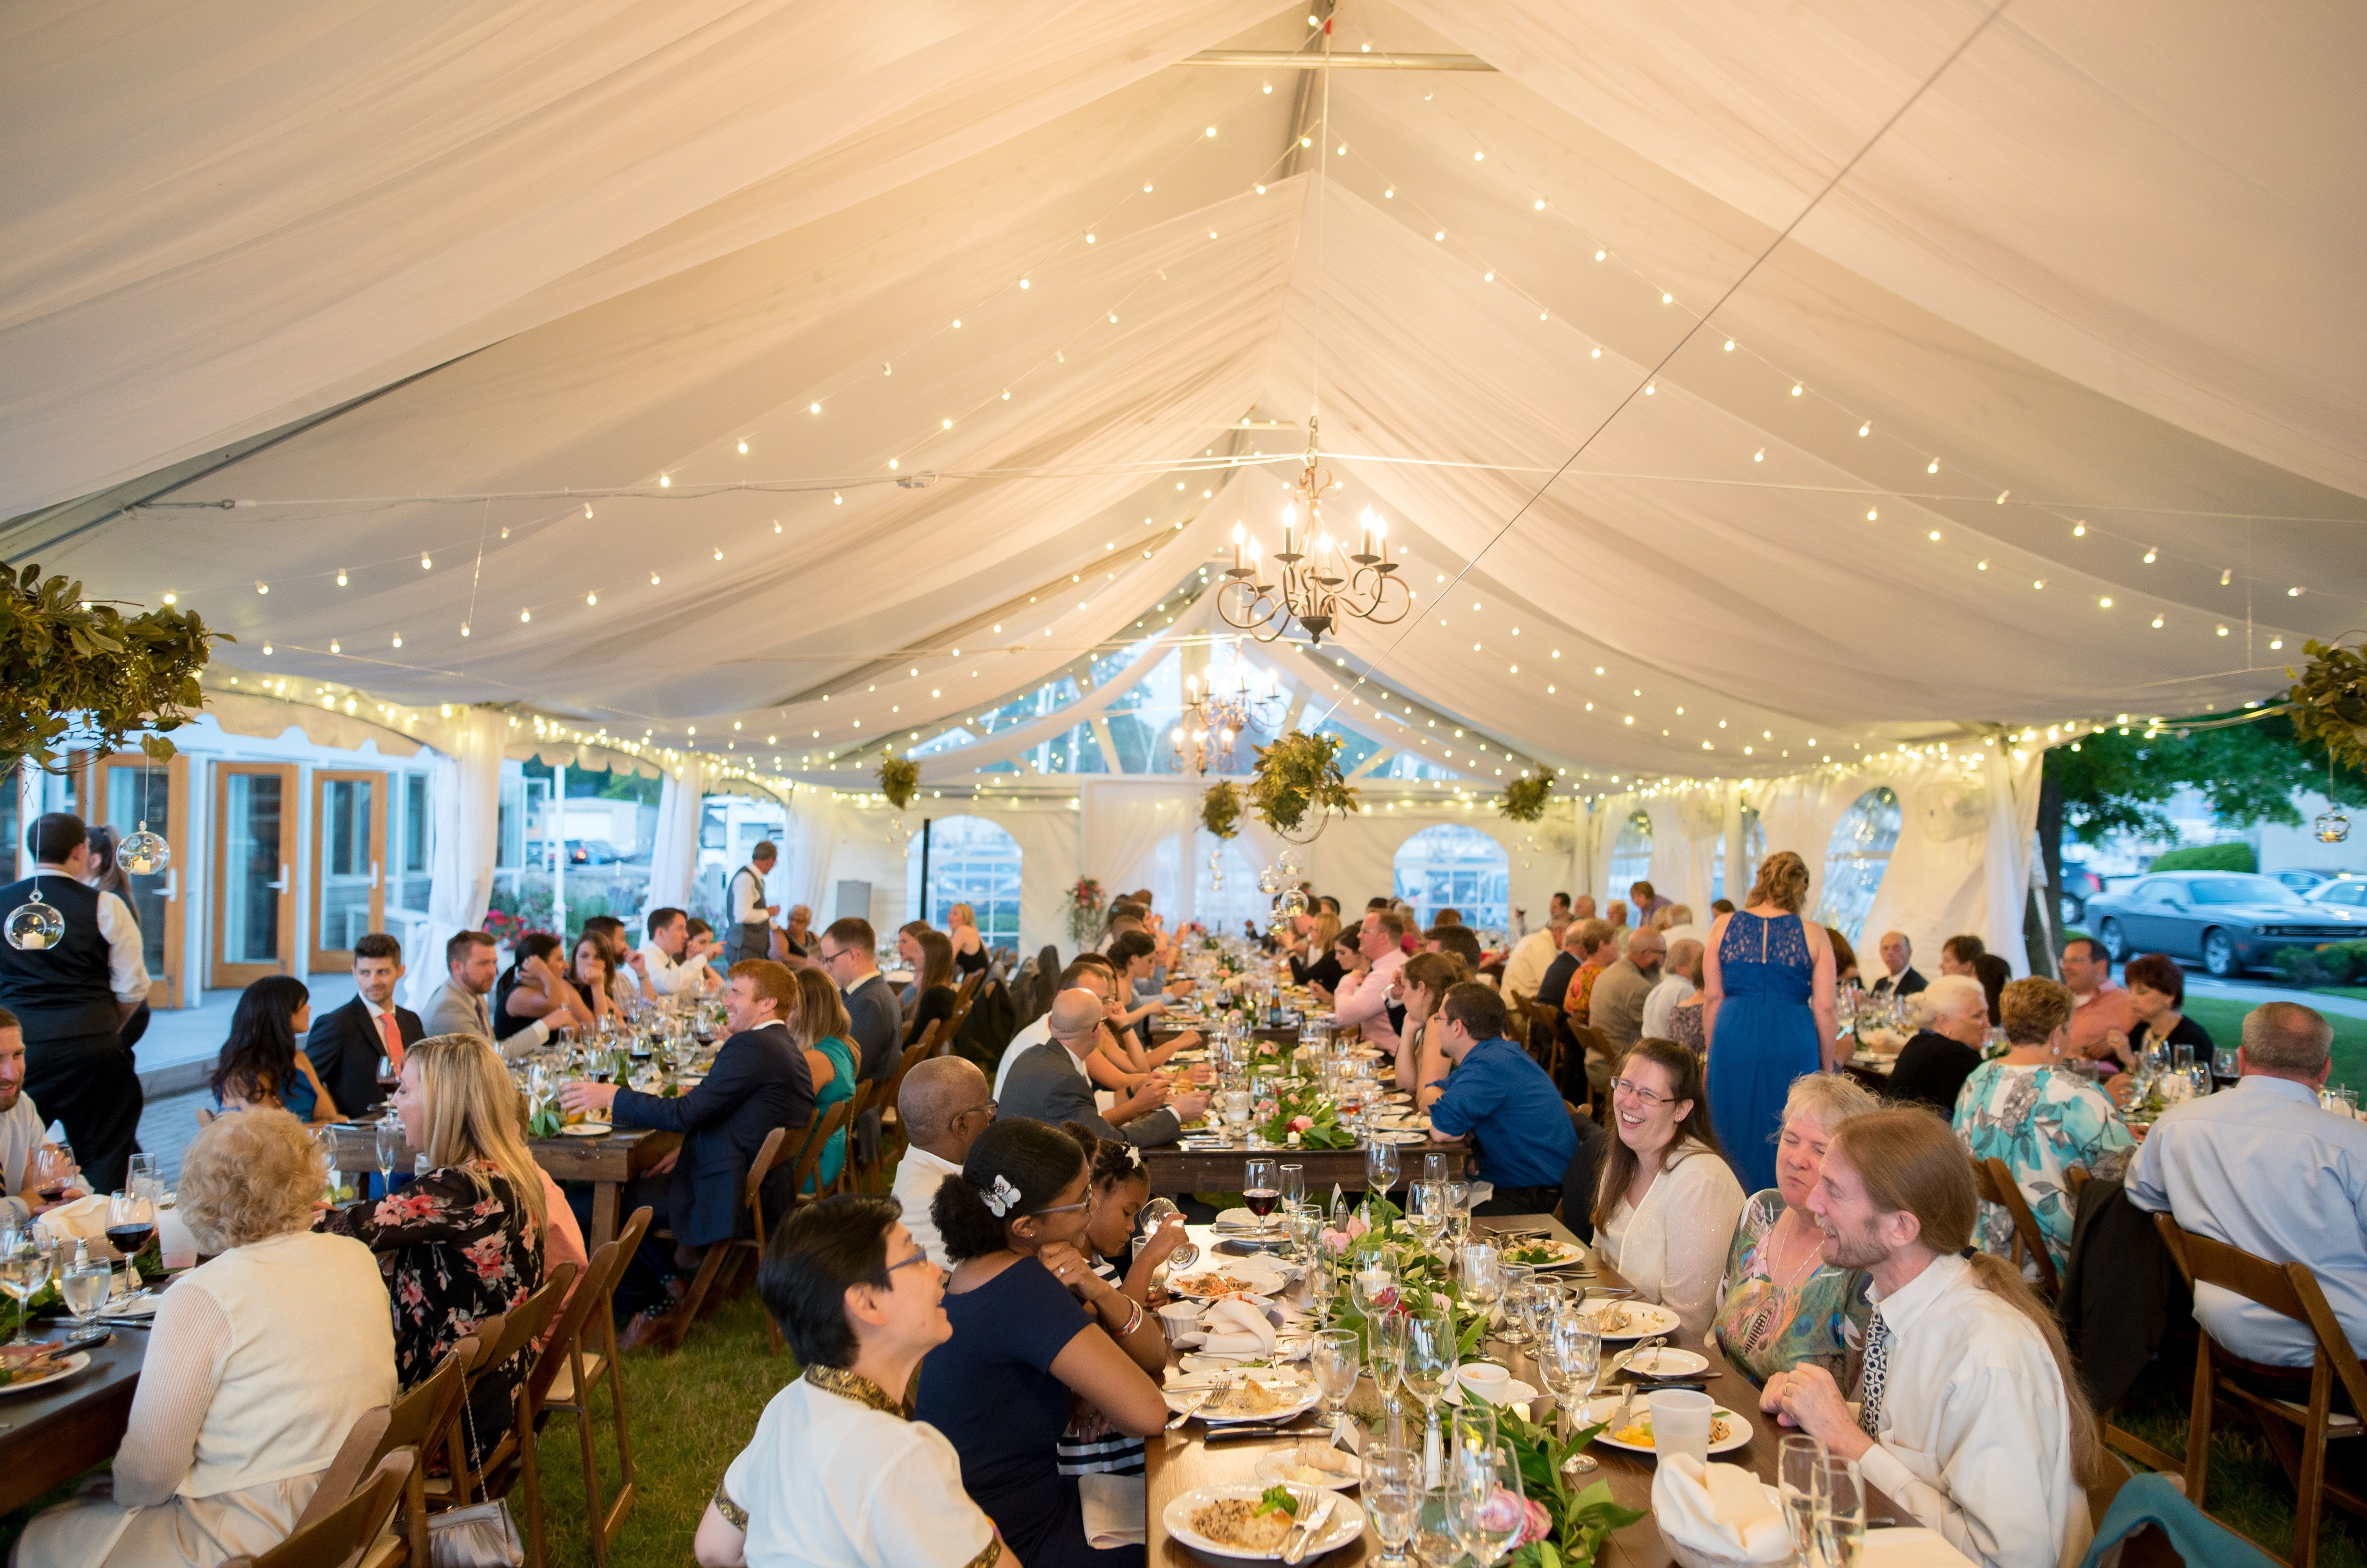 Tent Draping In A Frame Tent Wedding Tent Tent Wedding Tent